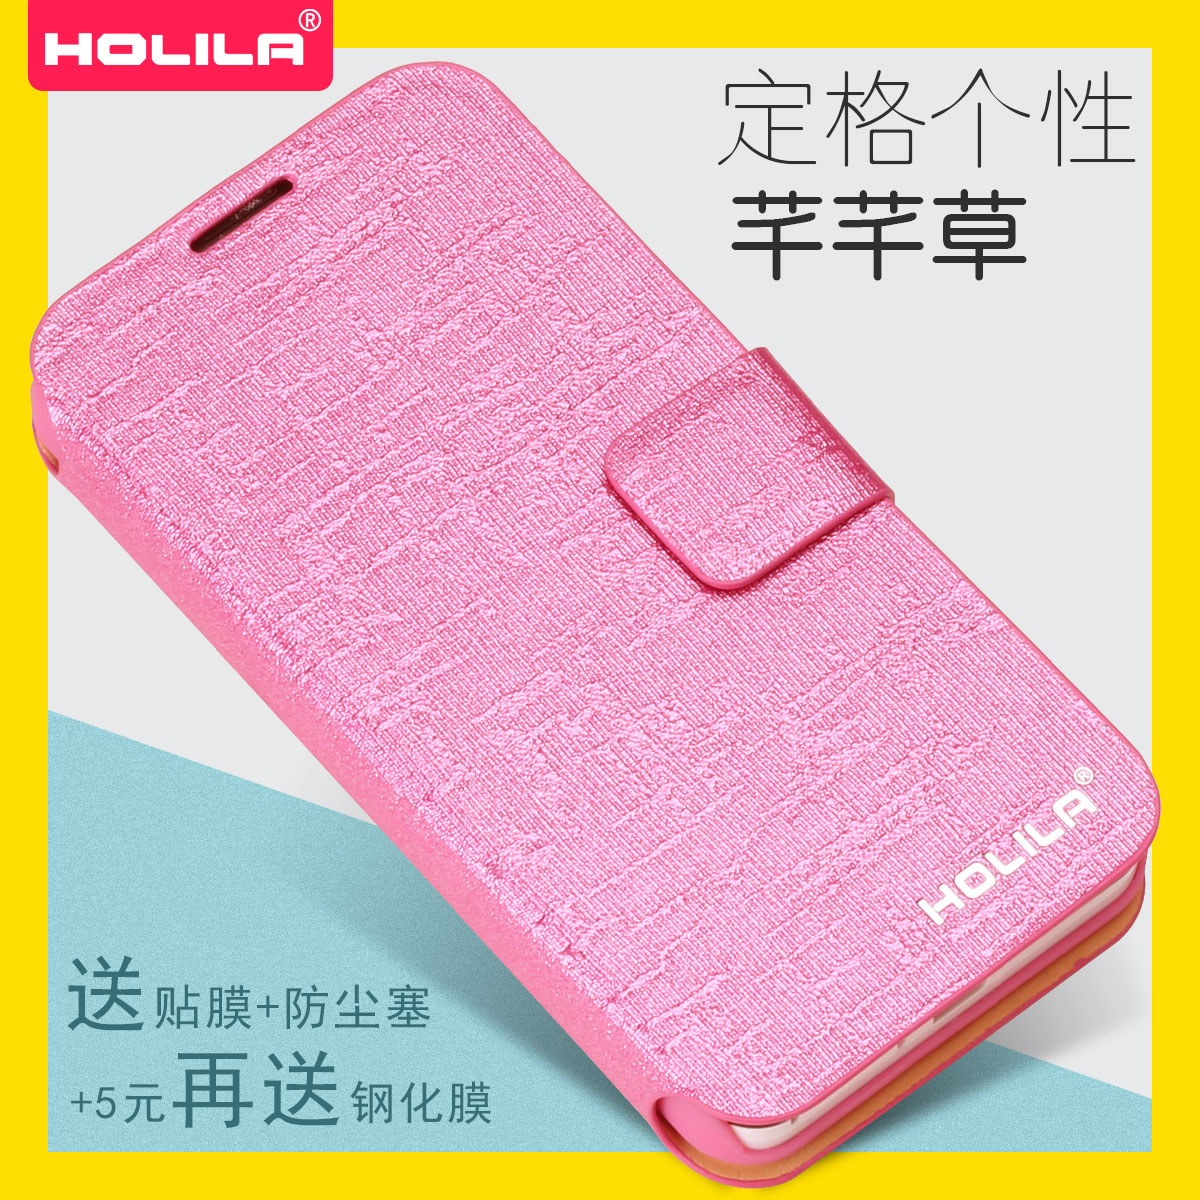 Holila phone sets millet m2 protective shell millet millet 2 mobile phone shell thin clamshell holster